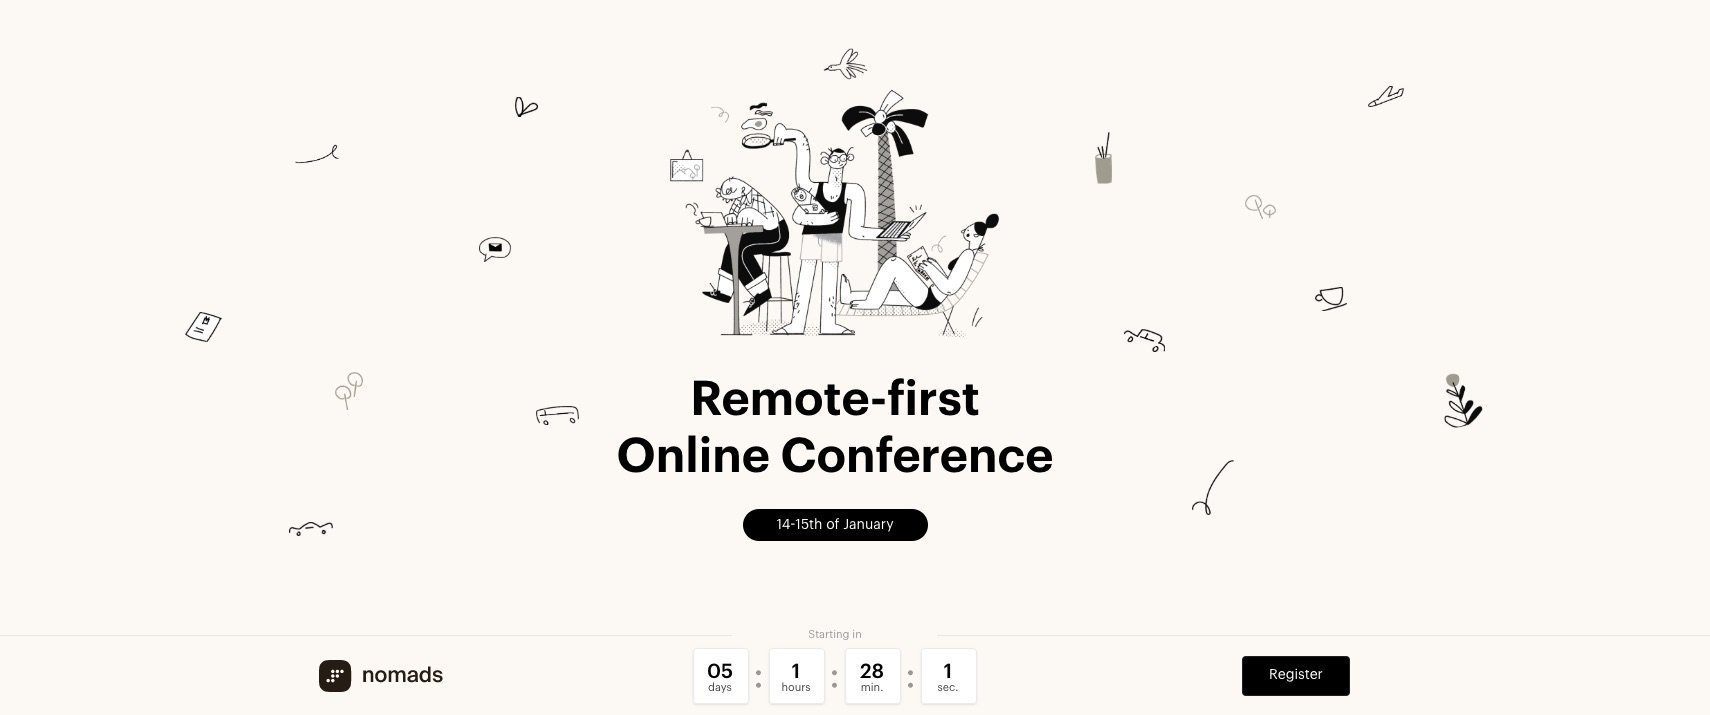 Remote-first Online Conference